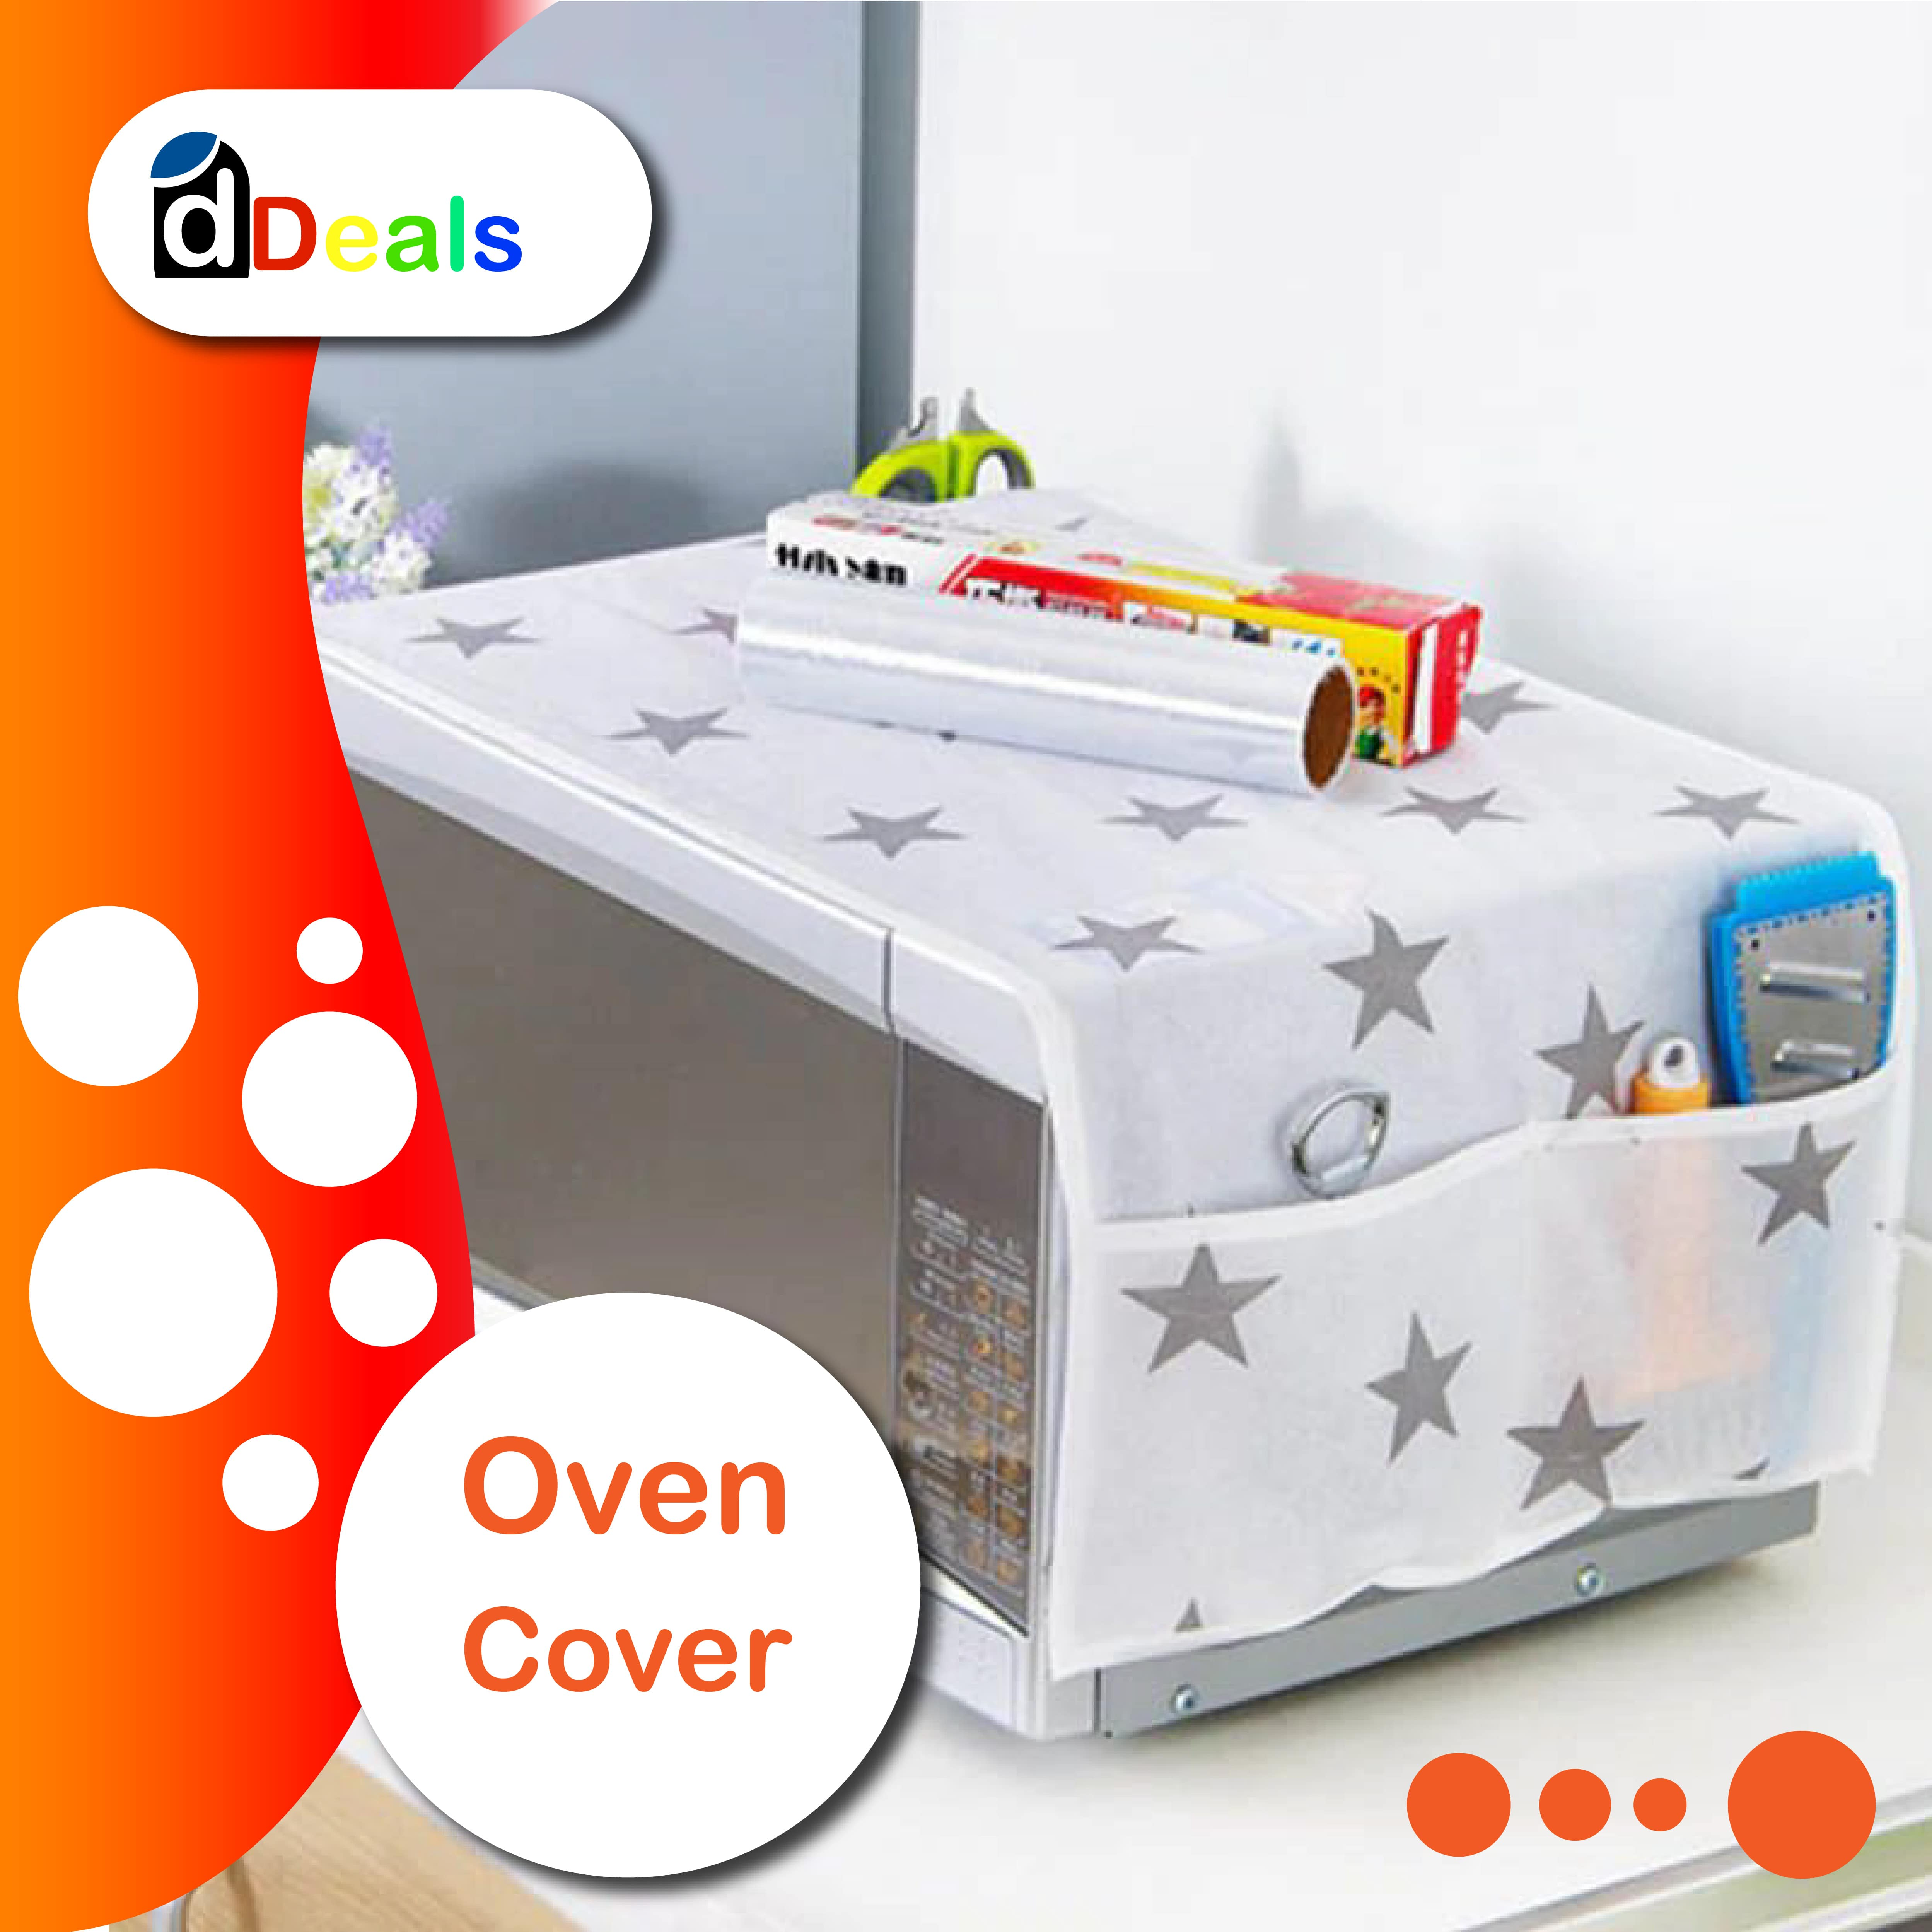 Fridge and Oven Cover Cute Print Dust Covers microwave cover Oven Covers Refrigerator cover organizer microwave cover oven fridge Cover With Pocket